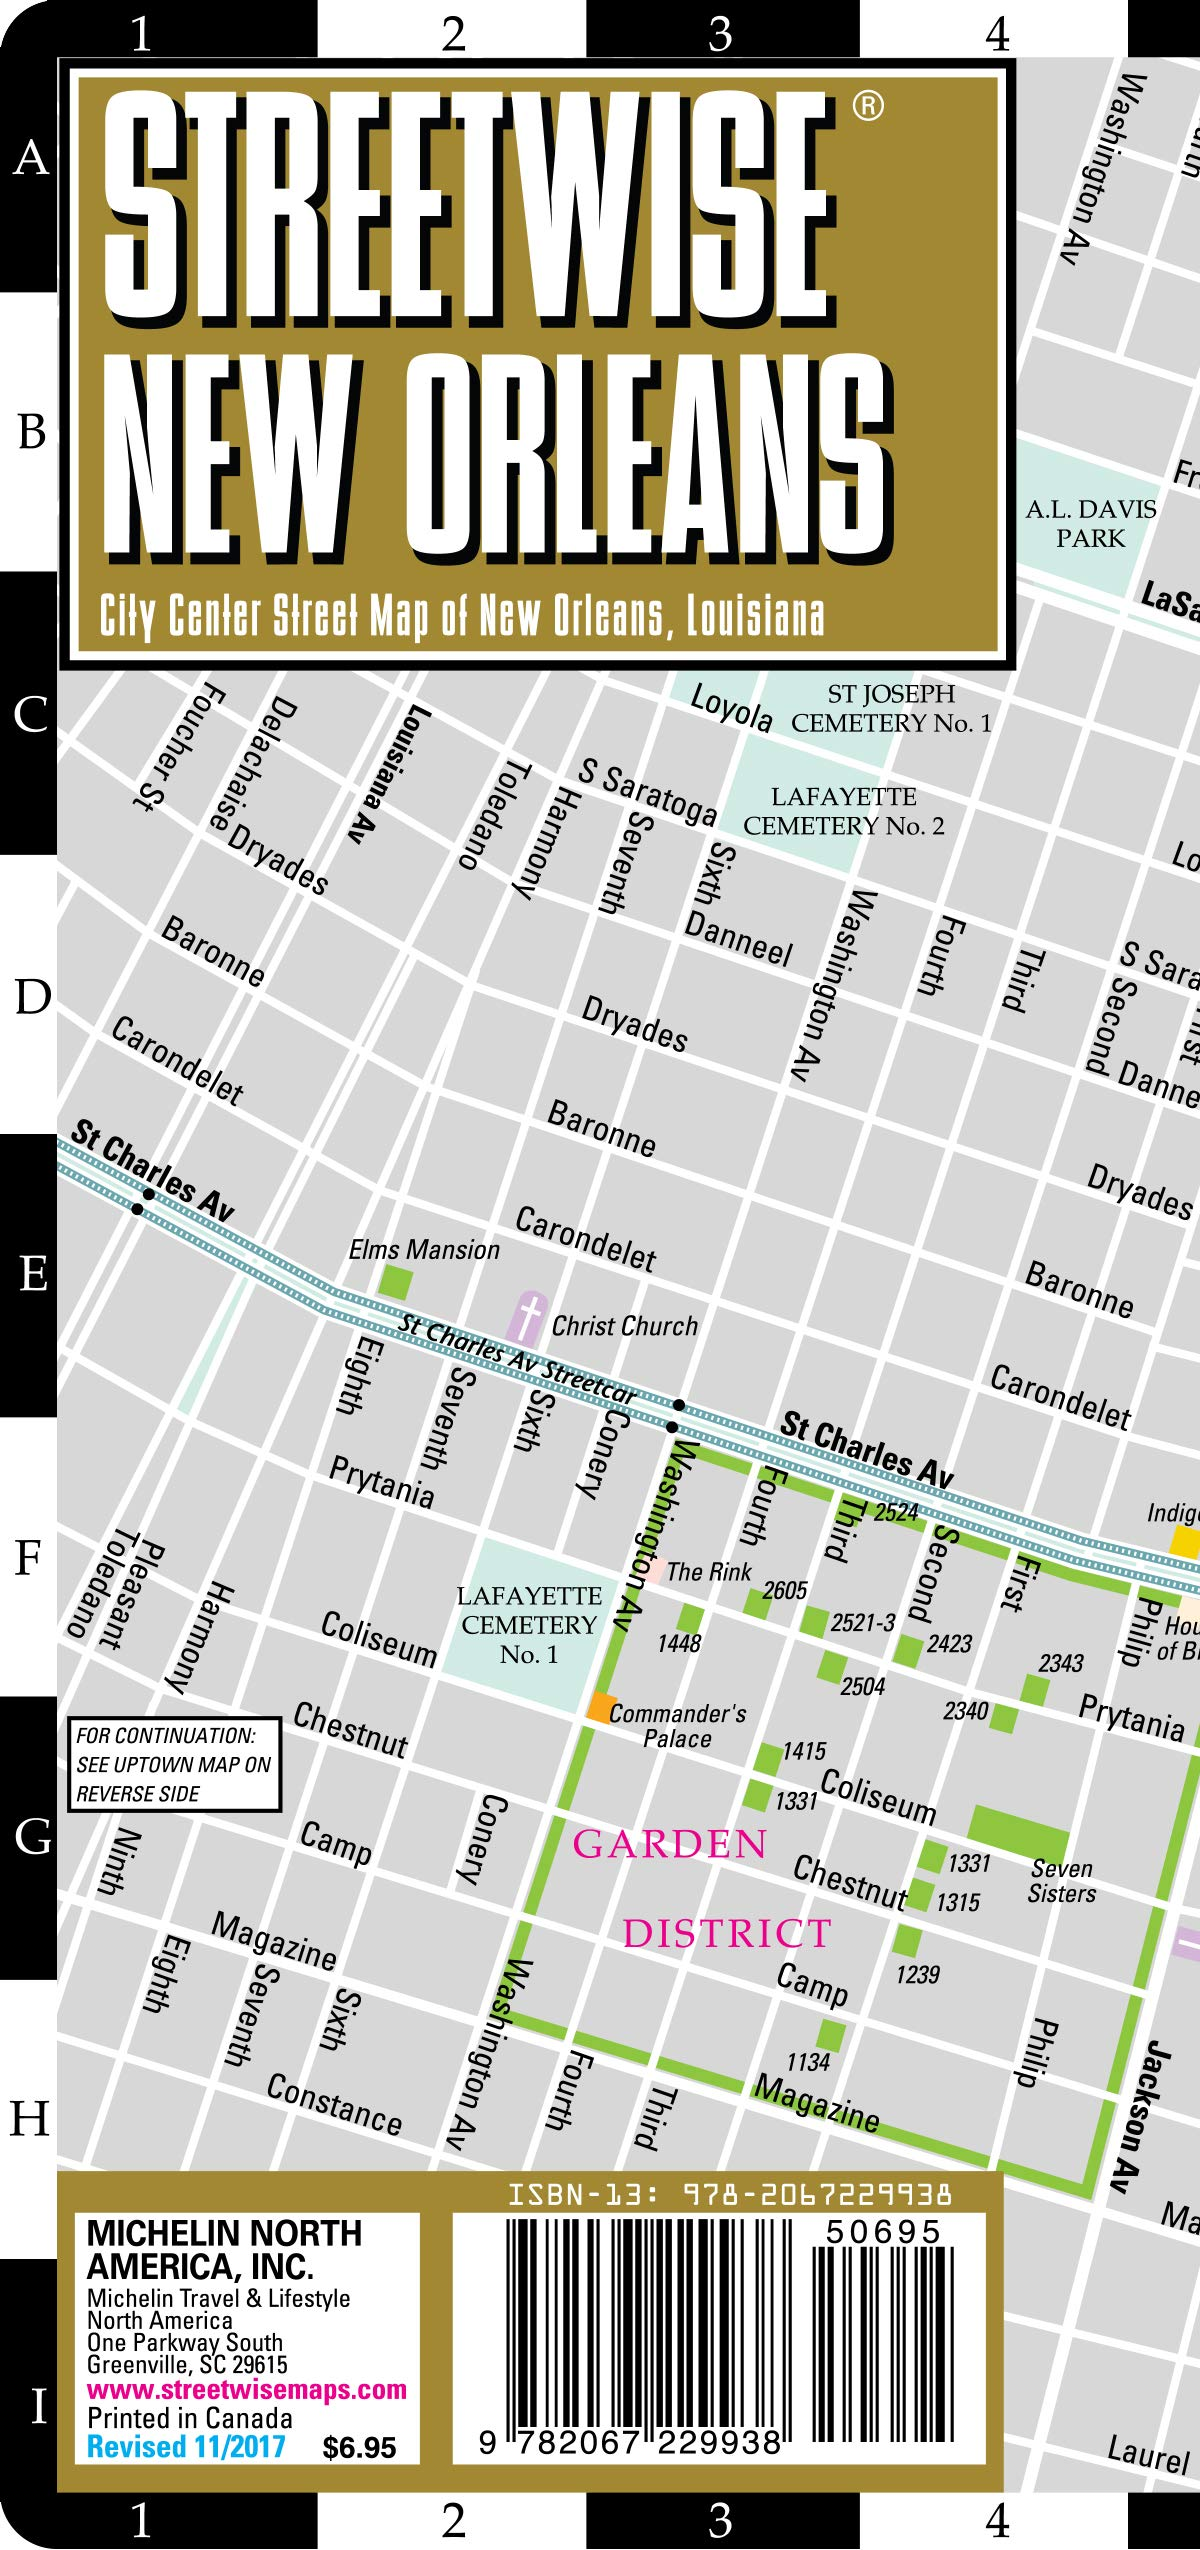 Louisiana New Orleans Map.Streetwise New Orleans Map Laminated City Center Street Map Of New